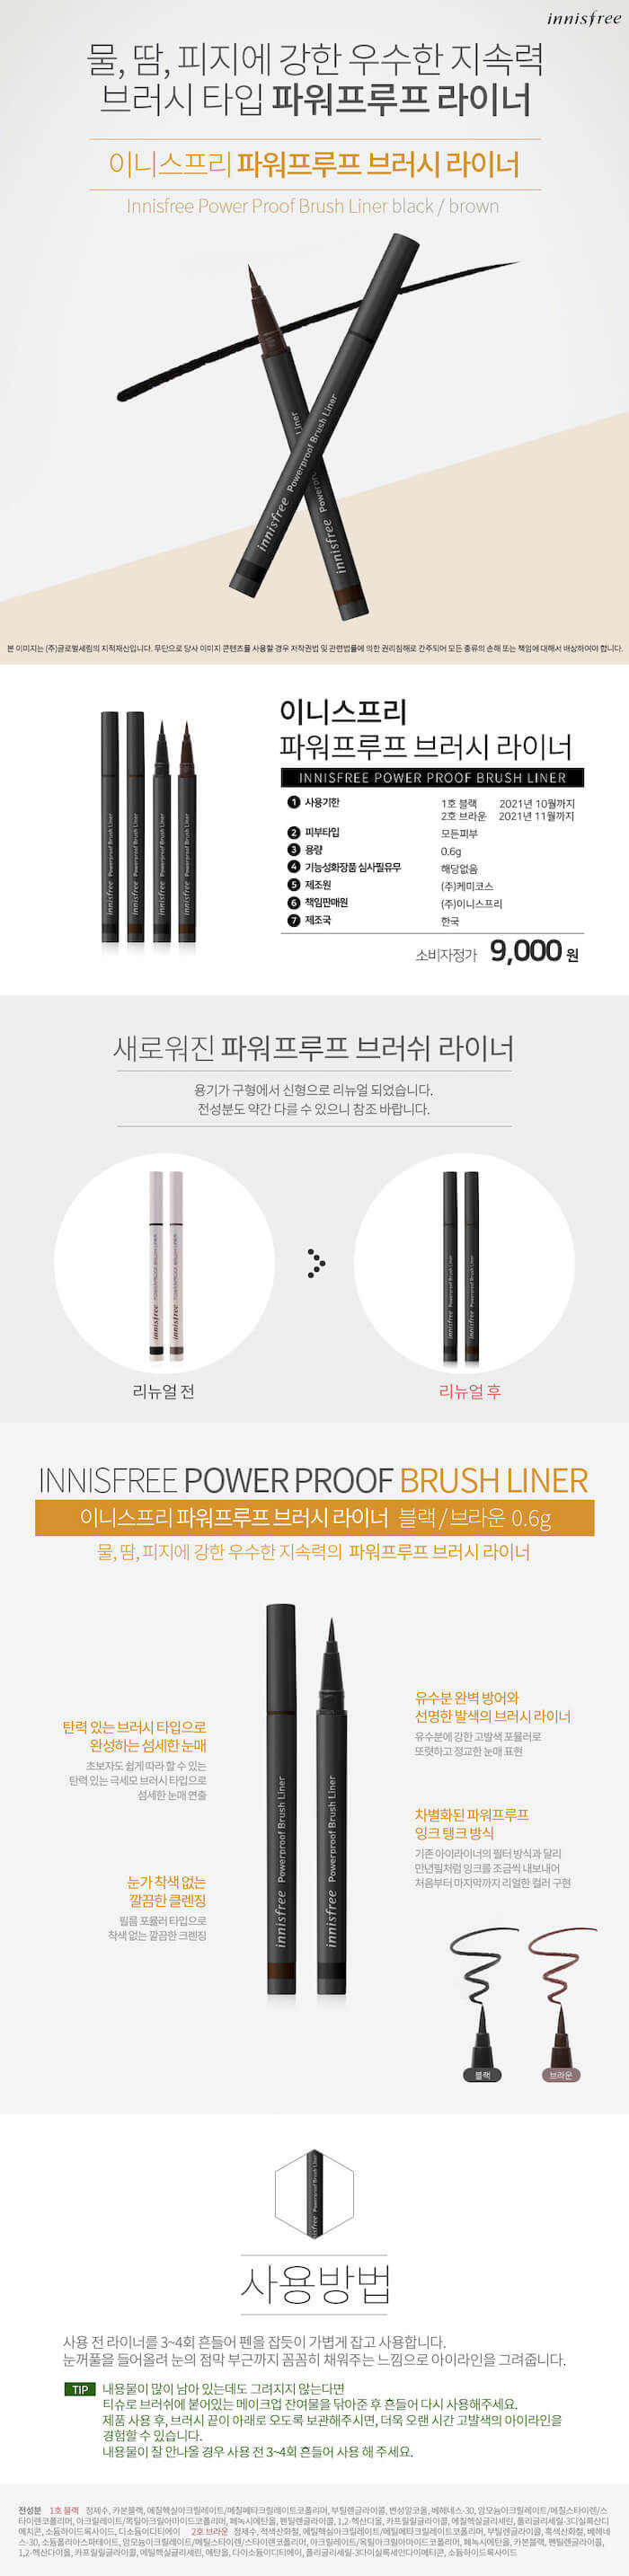 Innisfree Powerproof Brush Liner [#2 Brown ]